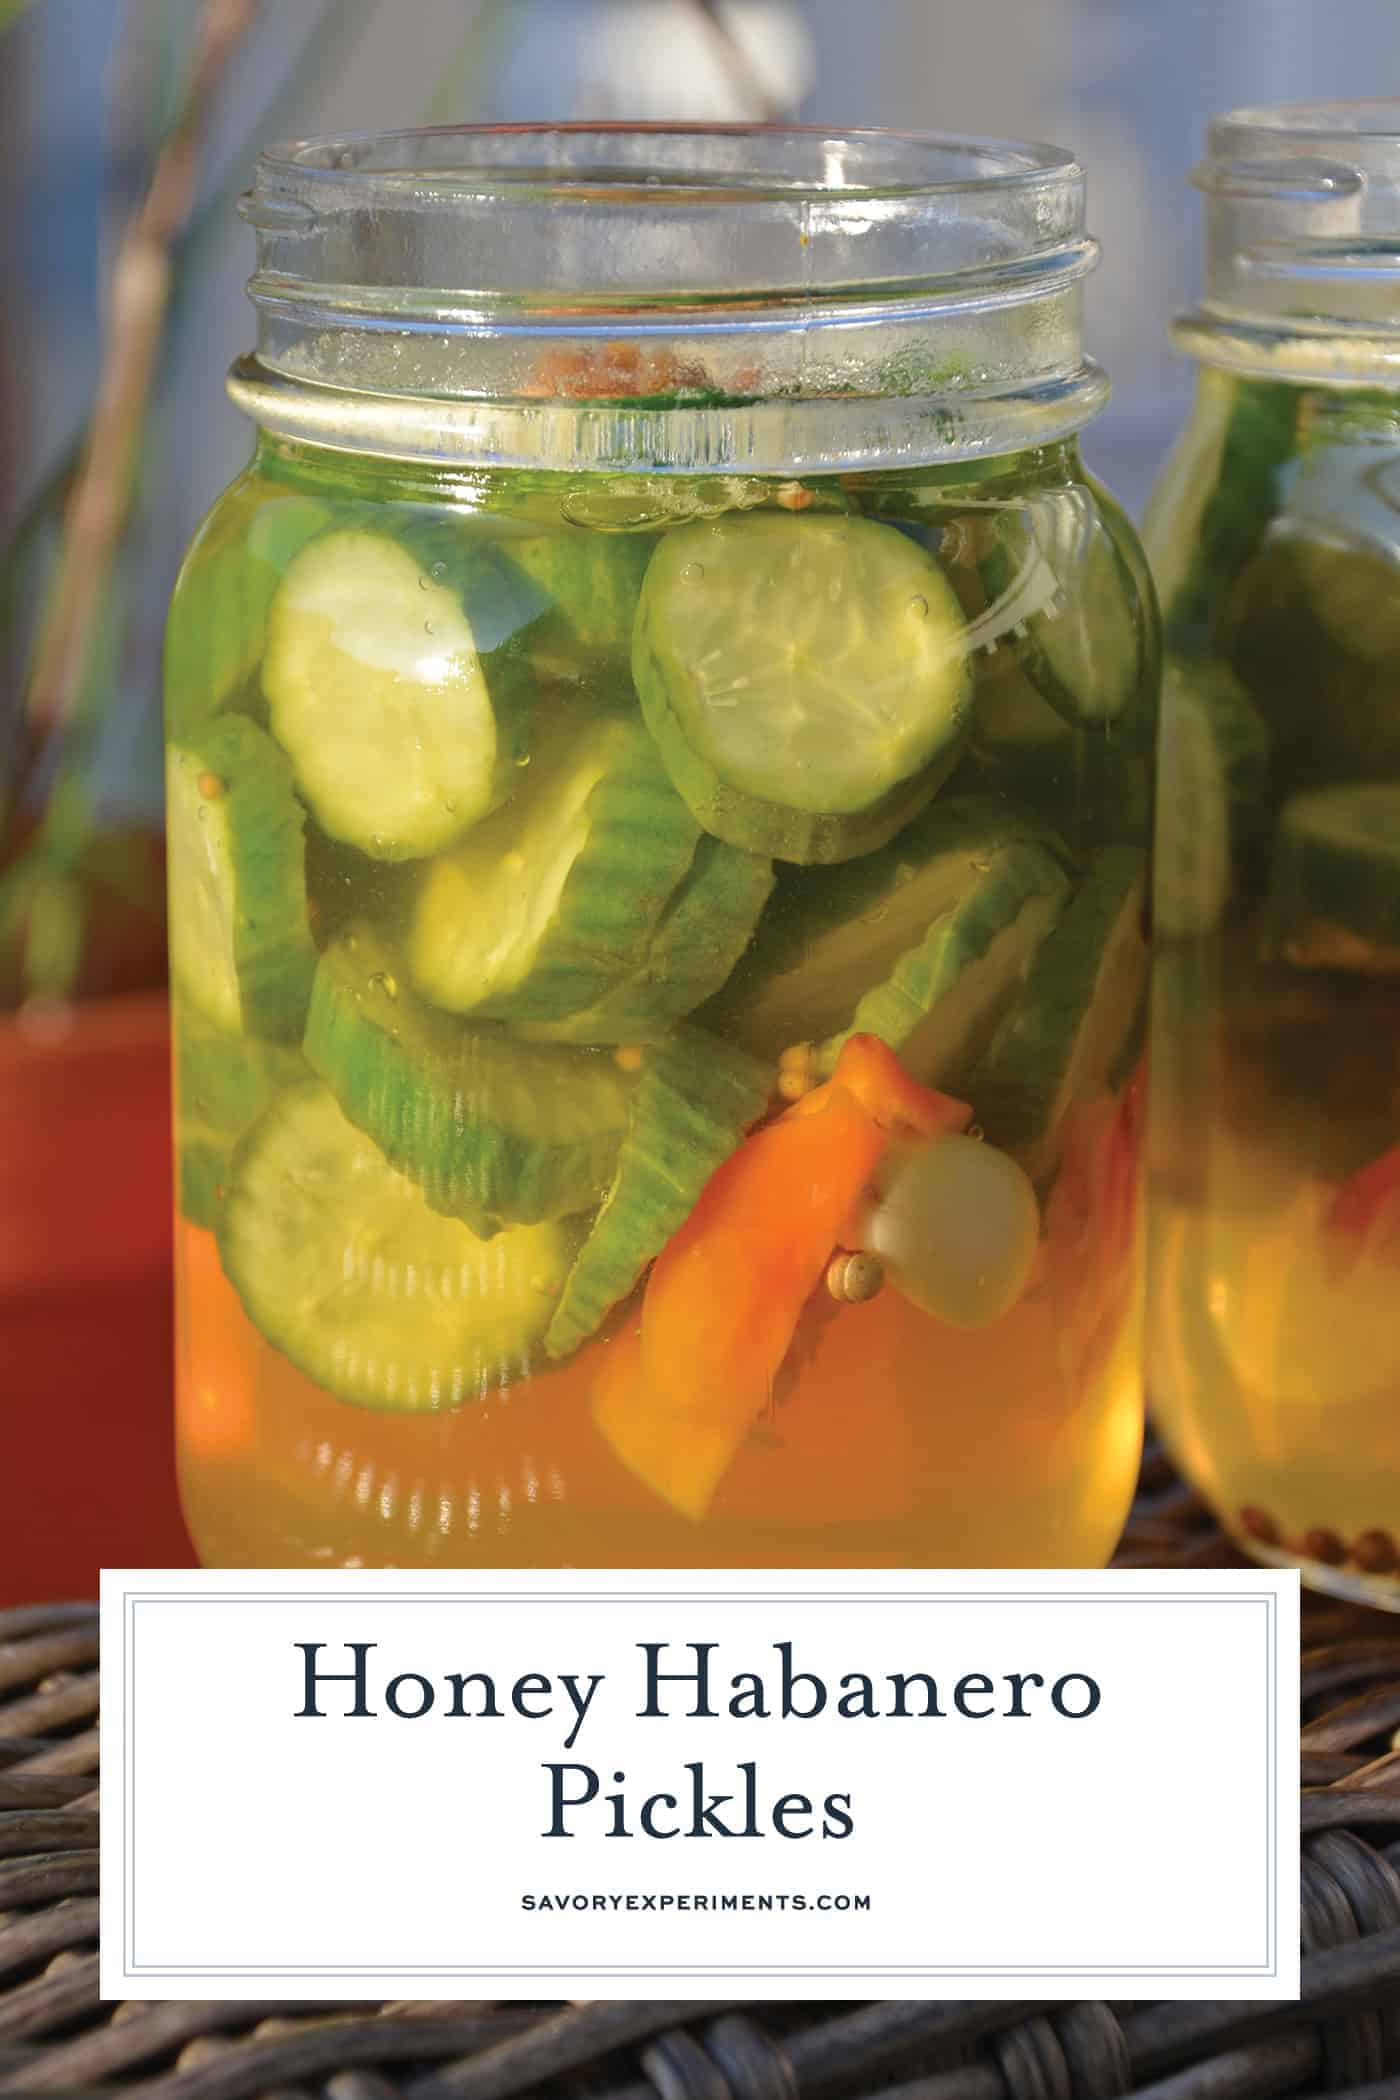 Honey Habanero Pickles are the best of both worlds, spicy and sweet. Eat them as a snack or pair them your favorite burger or hot dog. #homemadepickles #sweetandspicypickles #picklerecipe www.savoryexperiments.com